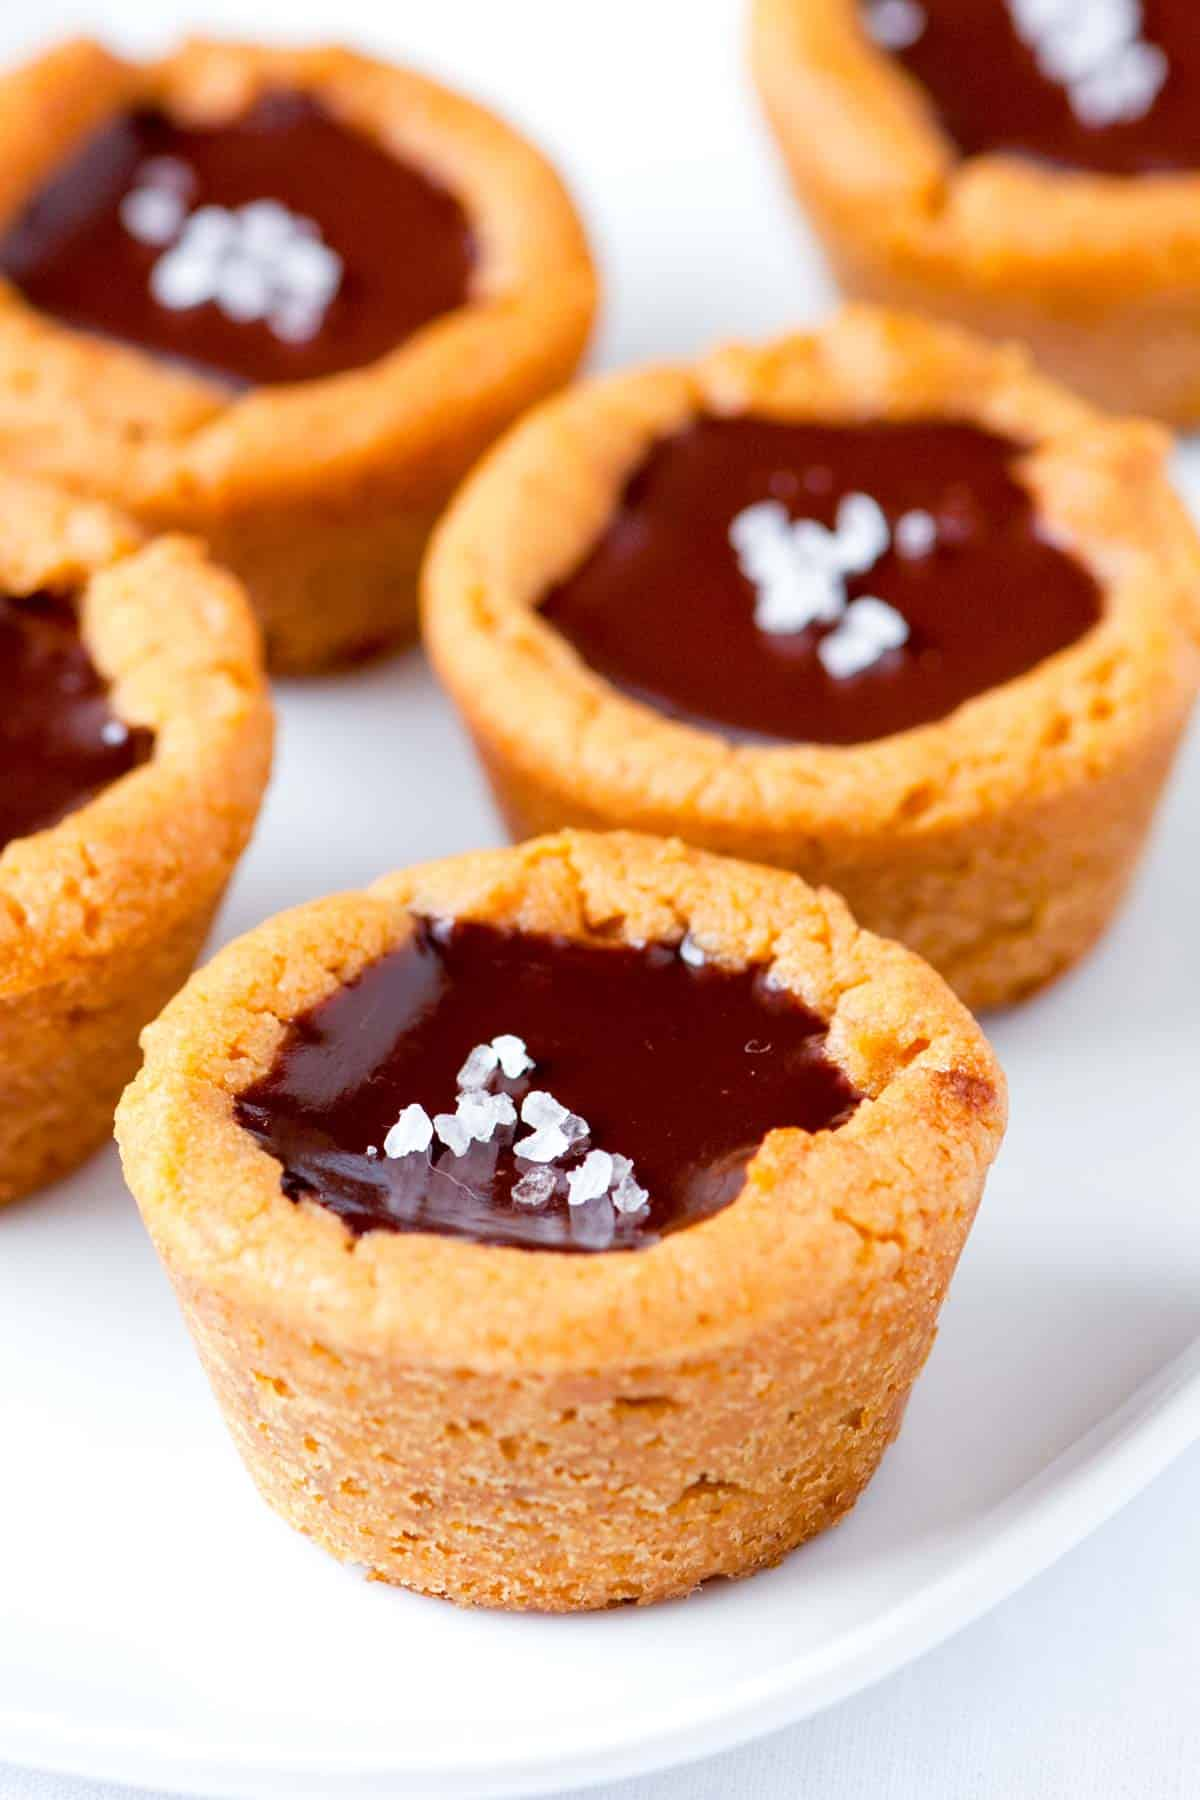 Salted Chocolate Truffle Peanut Butter Cookie Cups